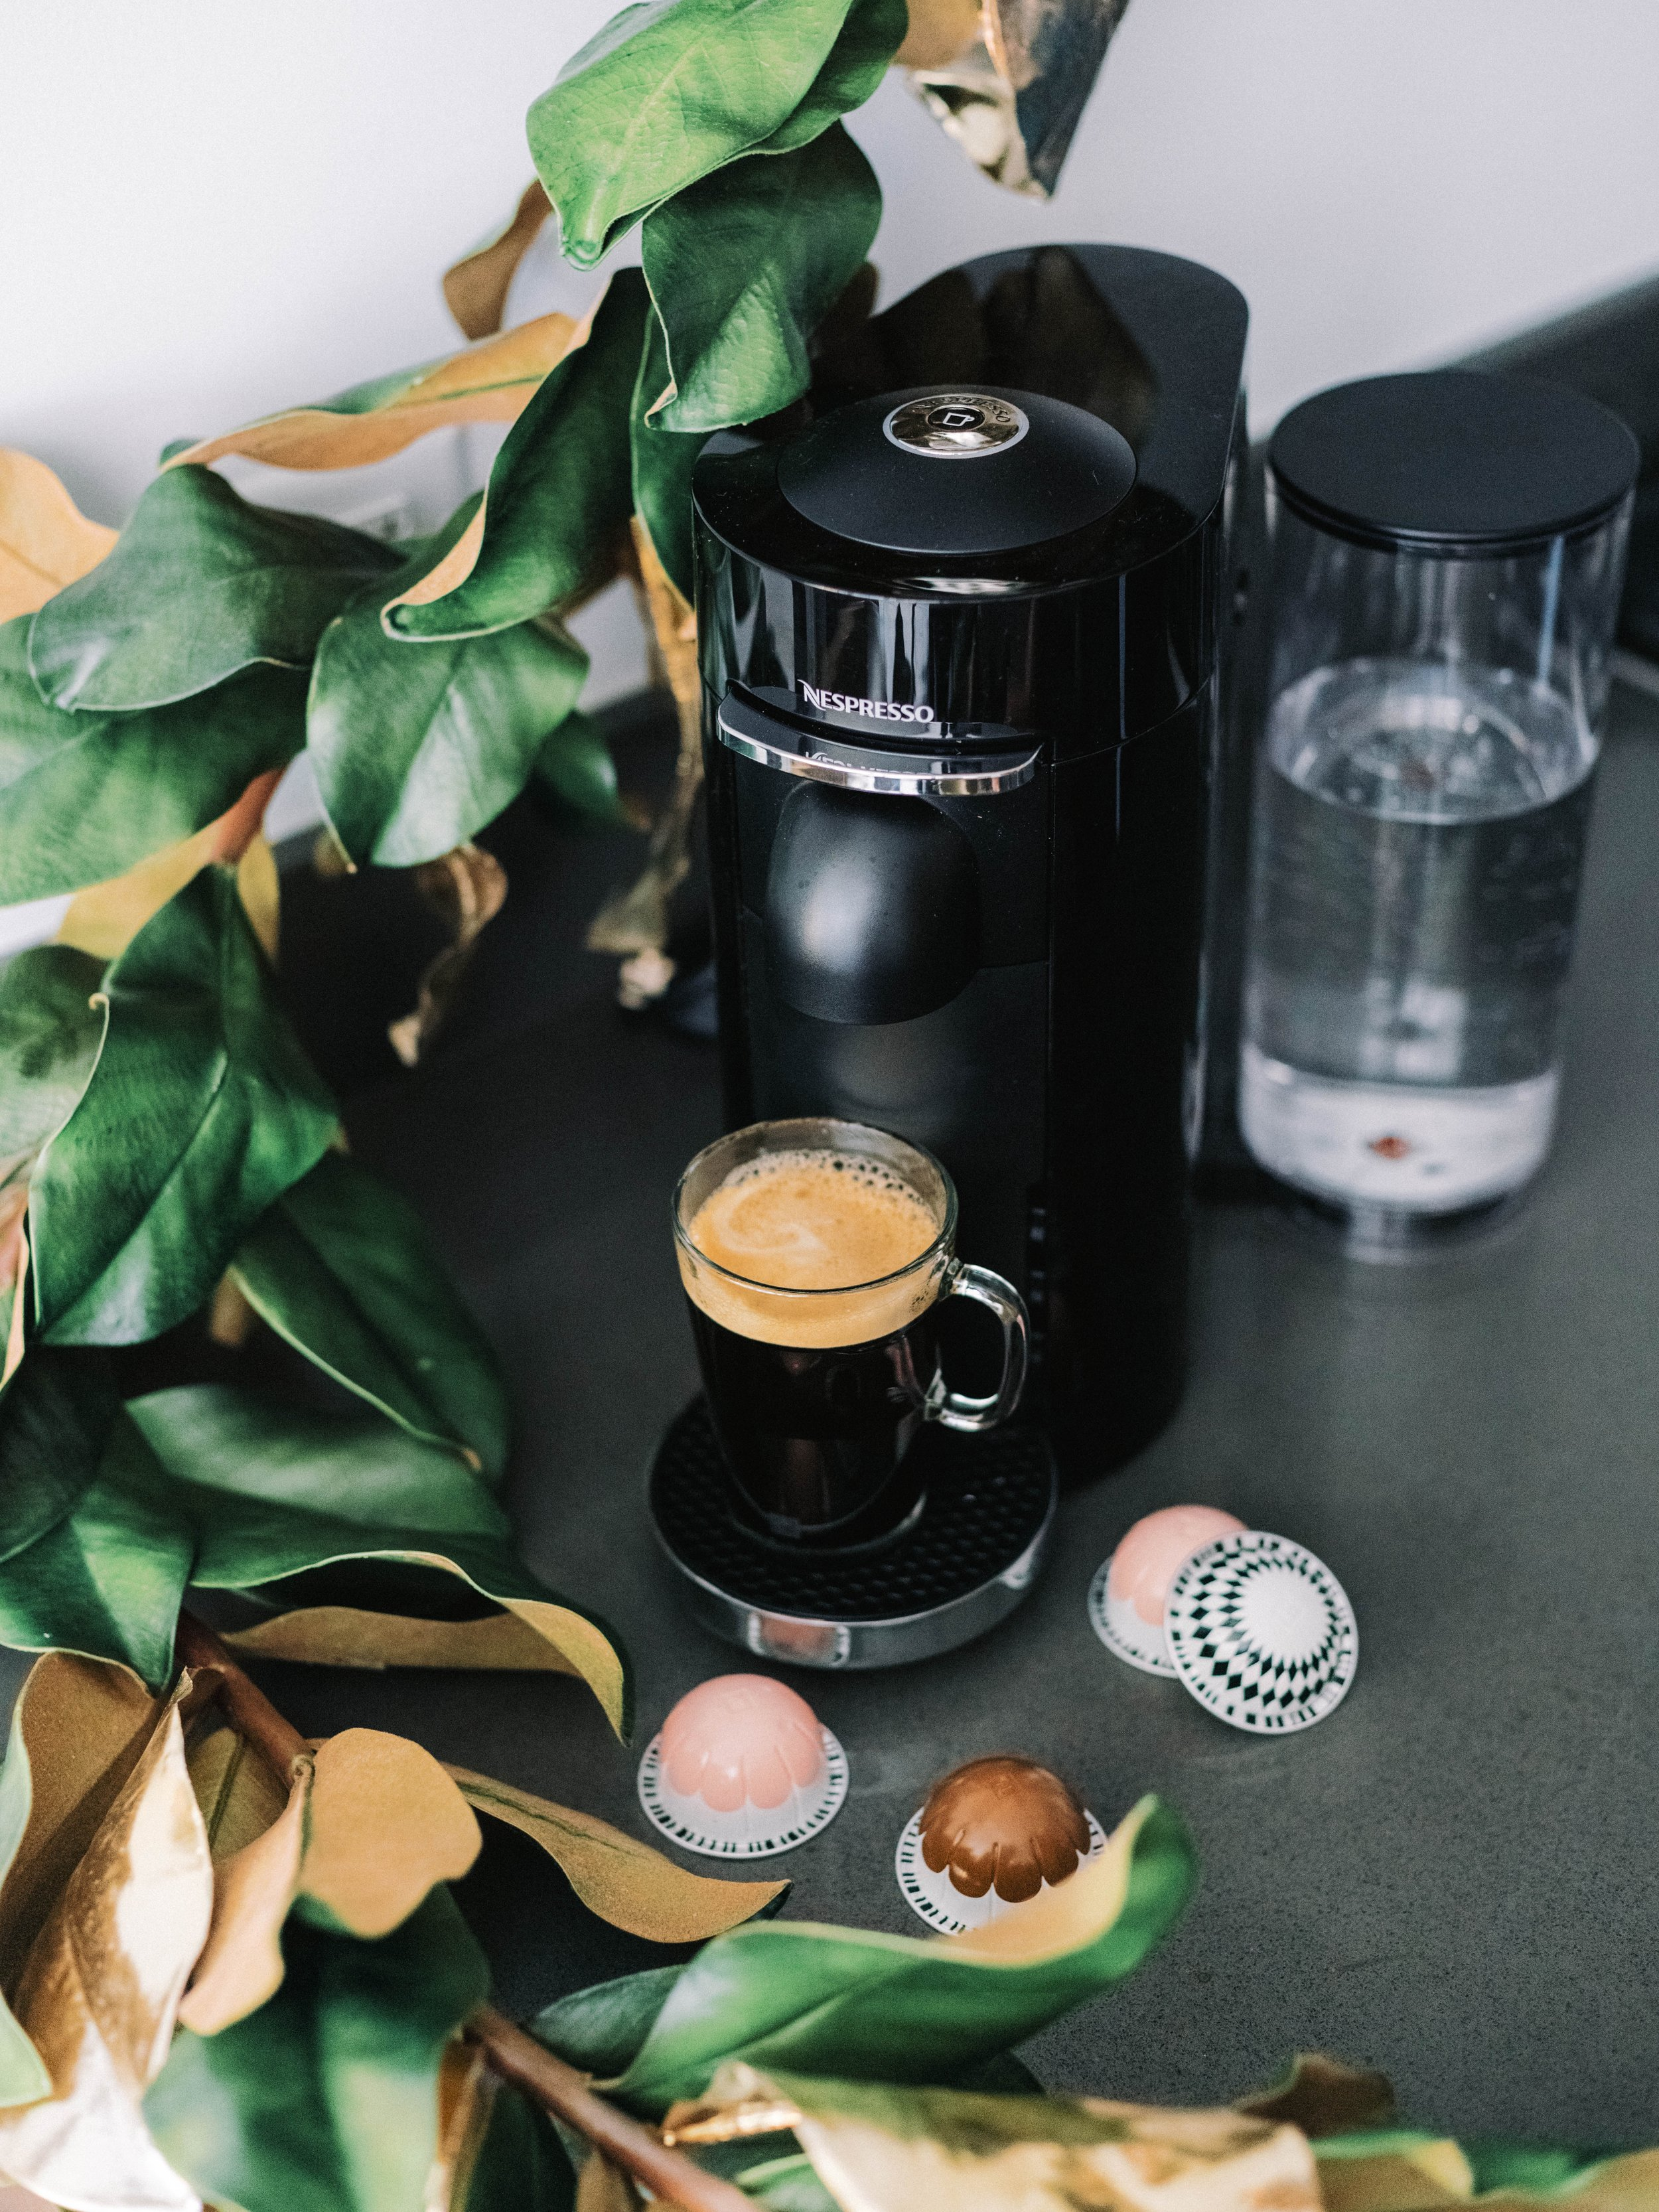 The Bachelor Caila Quinn Drinking Holiday Nespresso Coffee in Brooklyn Kitchen